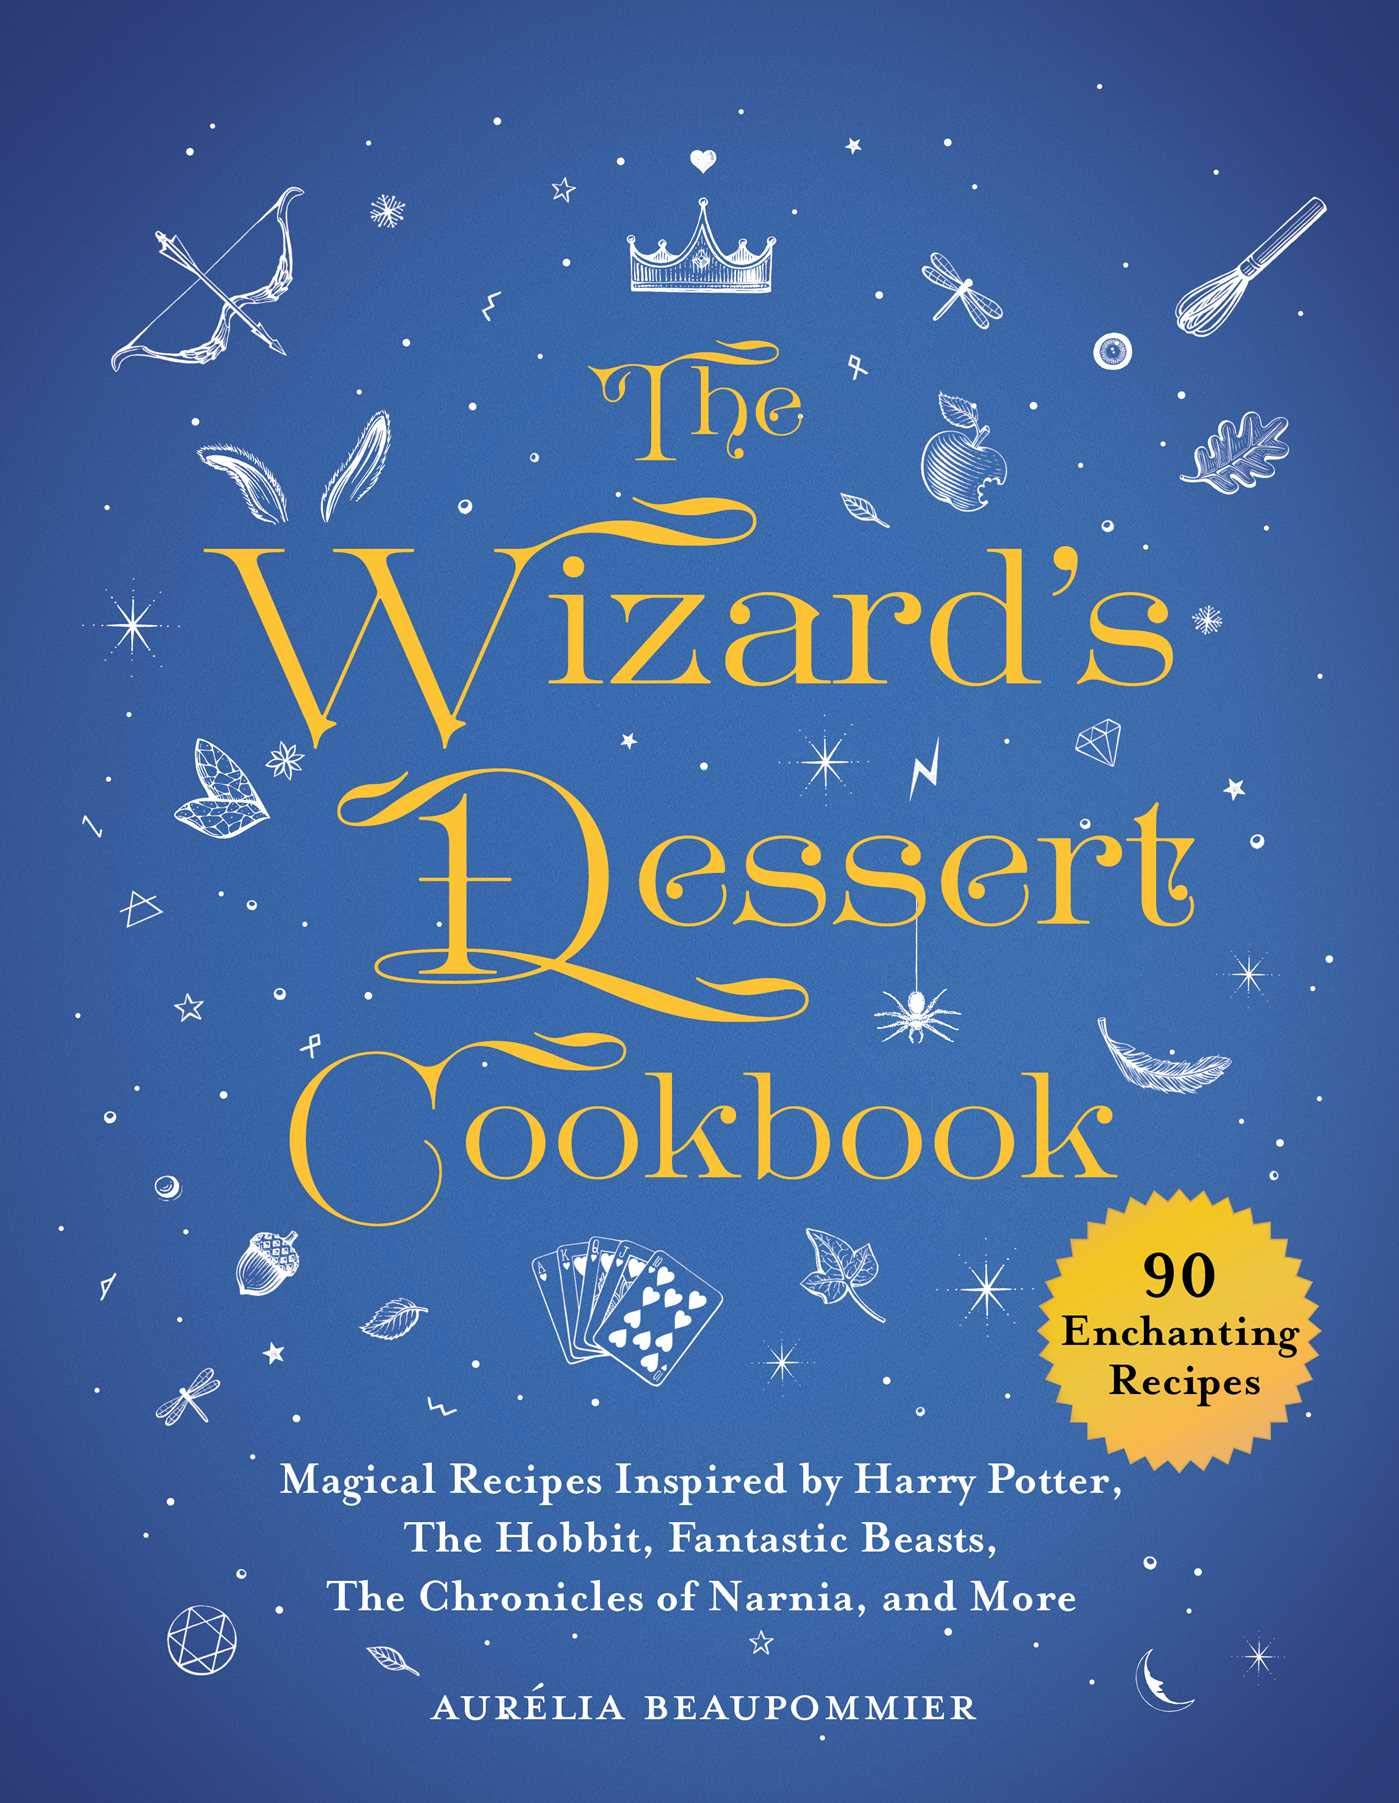 The Wizard's Dessert Cookbook  Magical Recipes Inspired By Harry Potter The Lord Of The Rings Fantastic Beasts The Chronicles Of Narnia And More